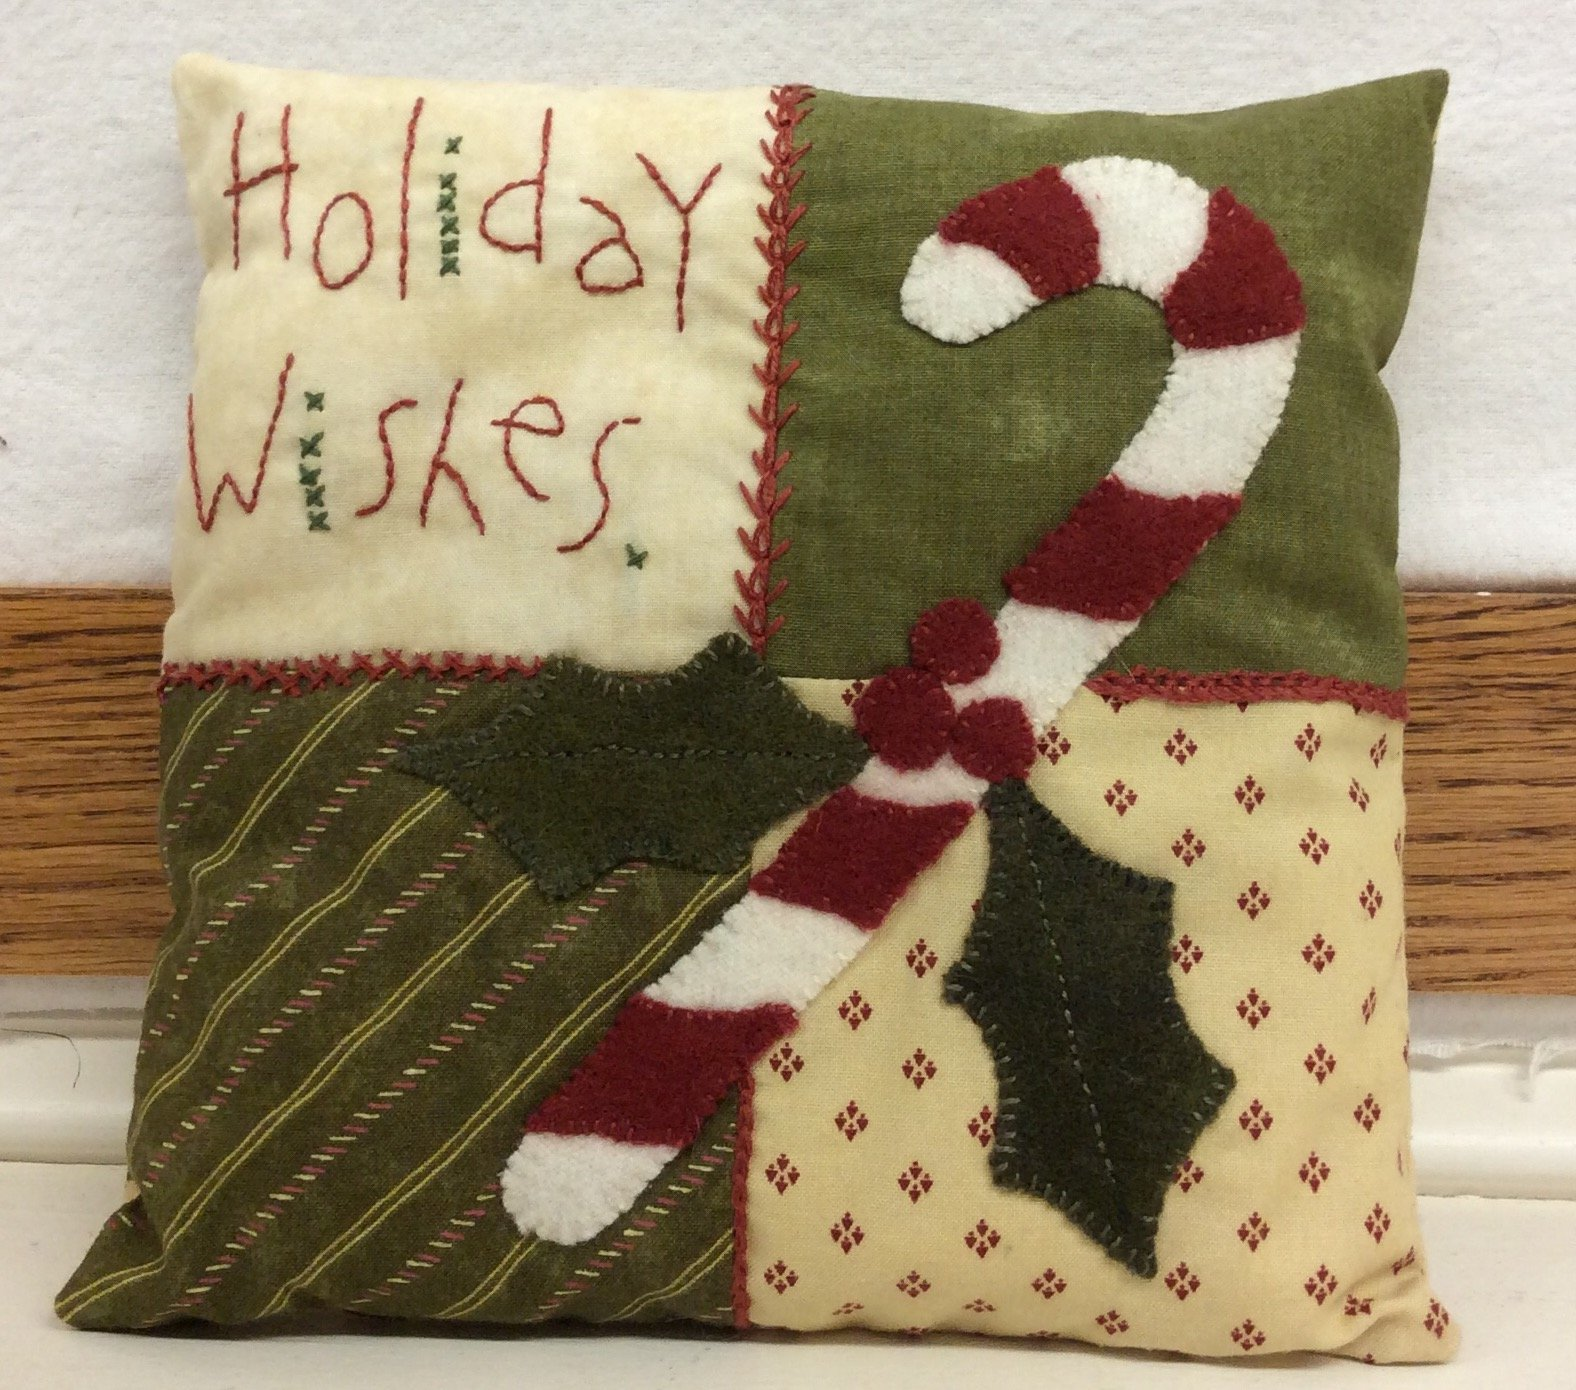 Holiday Wishes With Wool